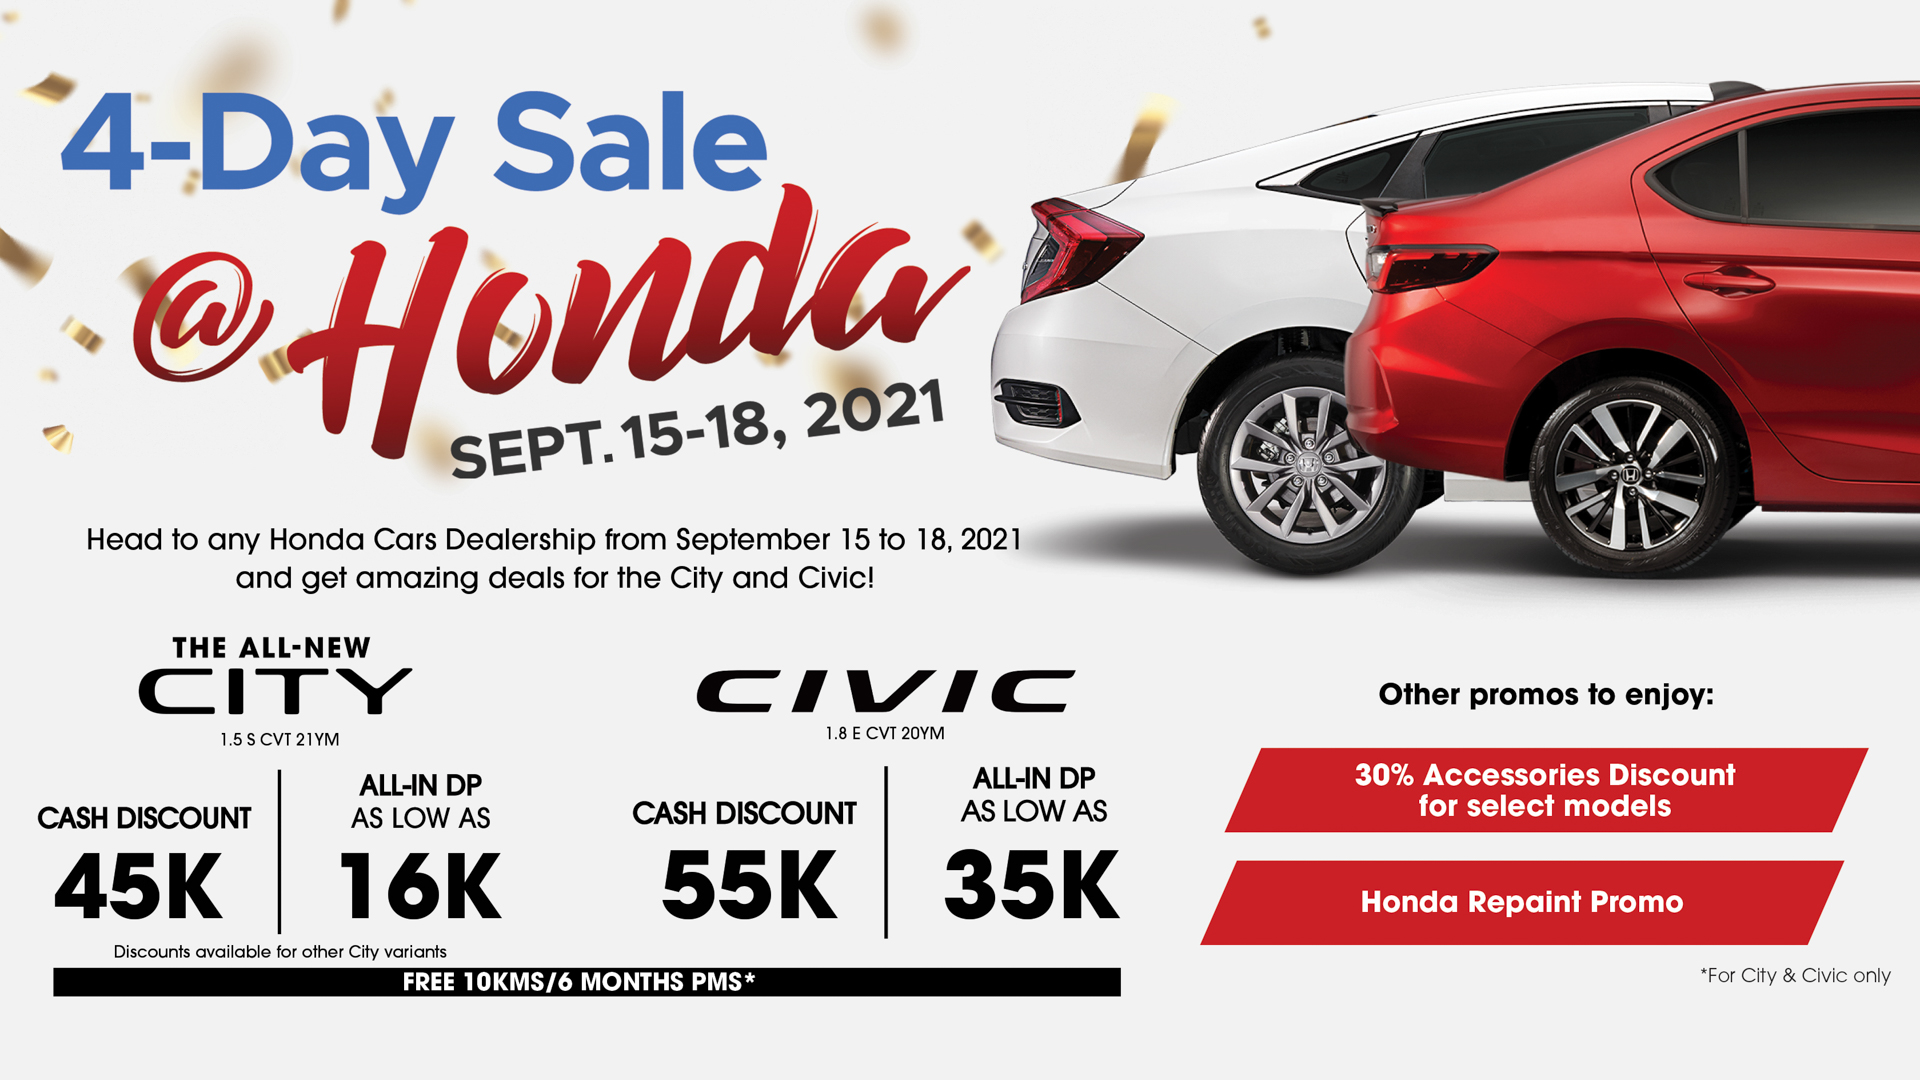 Honda releases all exclusive deals and additional discounts under 4-Day Sale